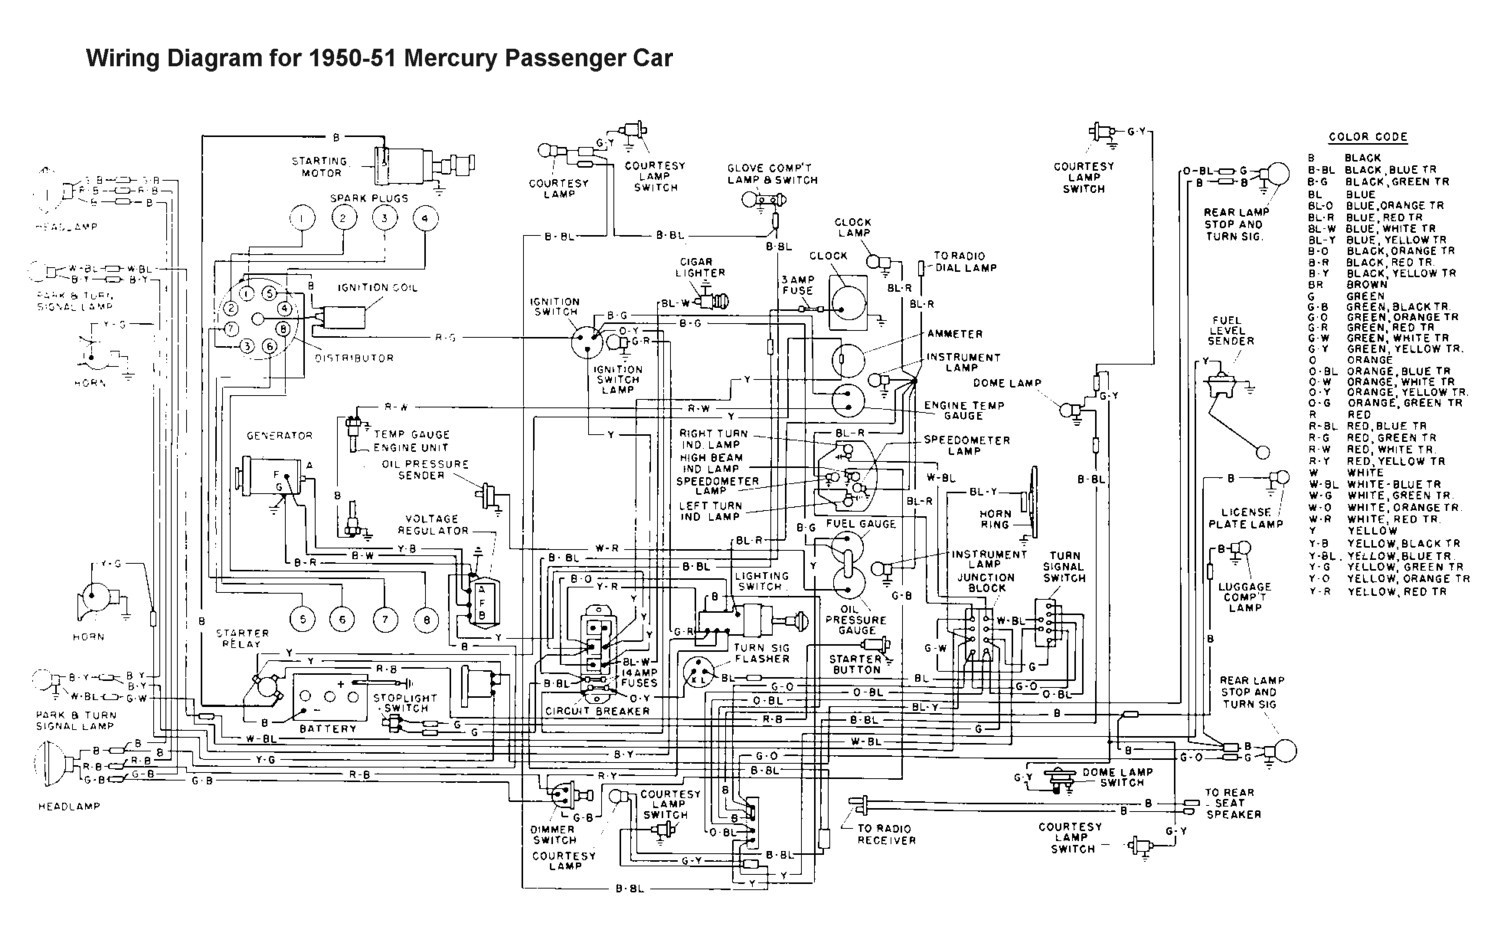 Flathead_Electrical_wiring1950 51merc flathead electrical wiring diagrams ford car wiring diagrams at bayanpartner.co